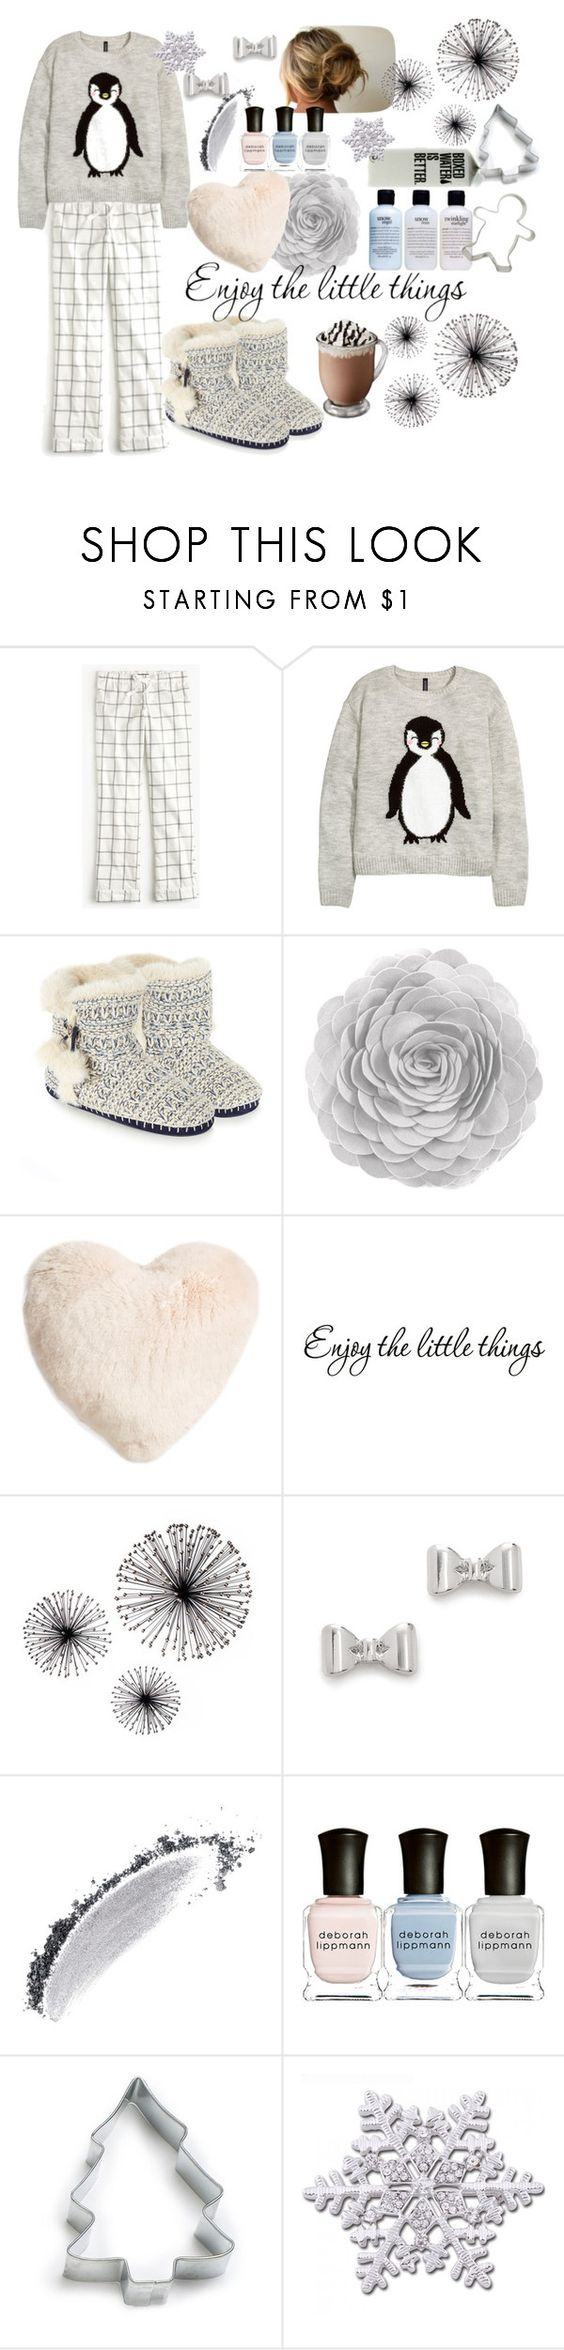 """❄︎Winter Morning❄︎"" by bcsipp ❤ liked on Polyvore featuring J.Crew, Accessorize, Nordstrom, Marc by Marc Jacobs, NARS Cosmetics, Deborah Lippmann, Ann Clark and philosophy"